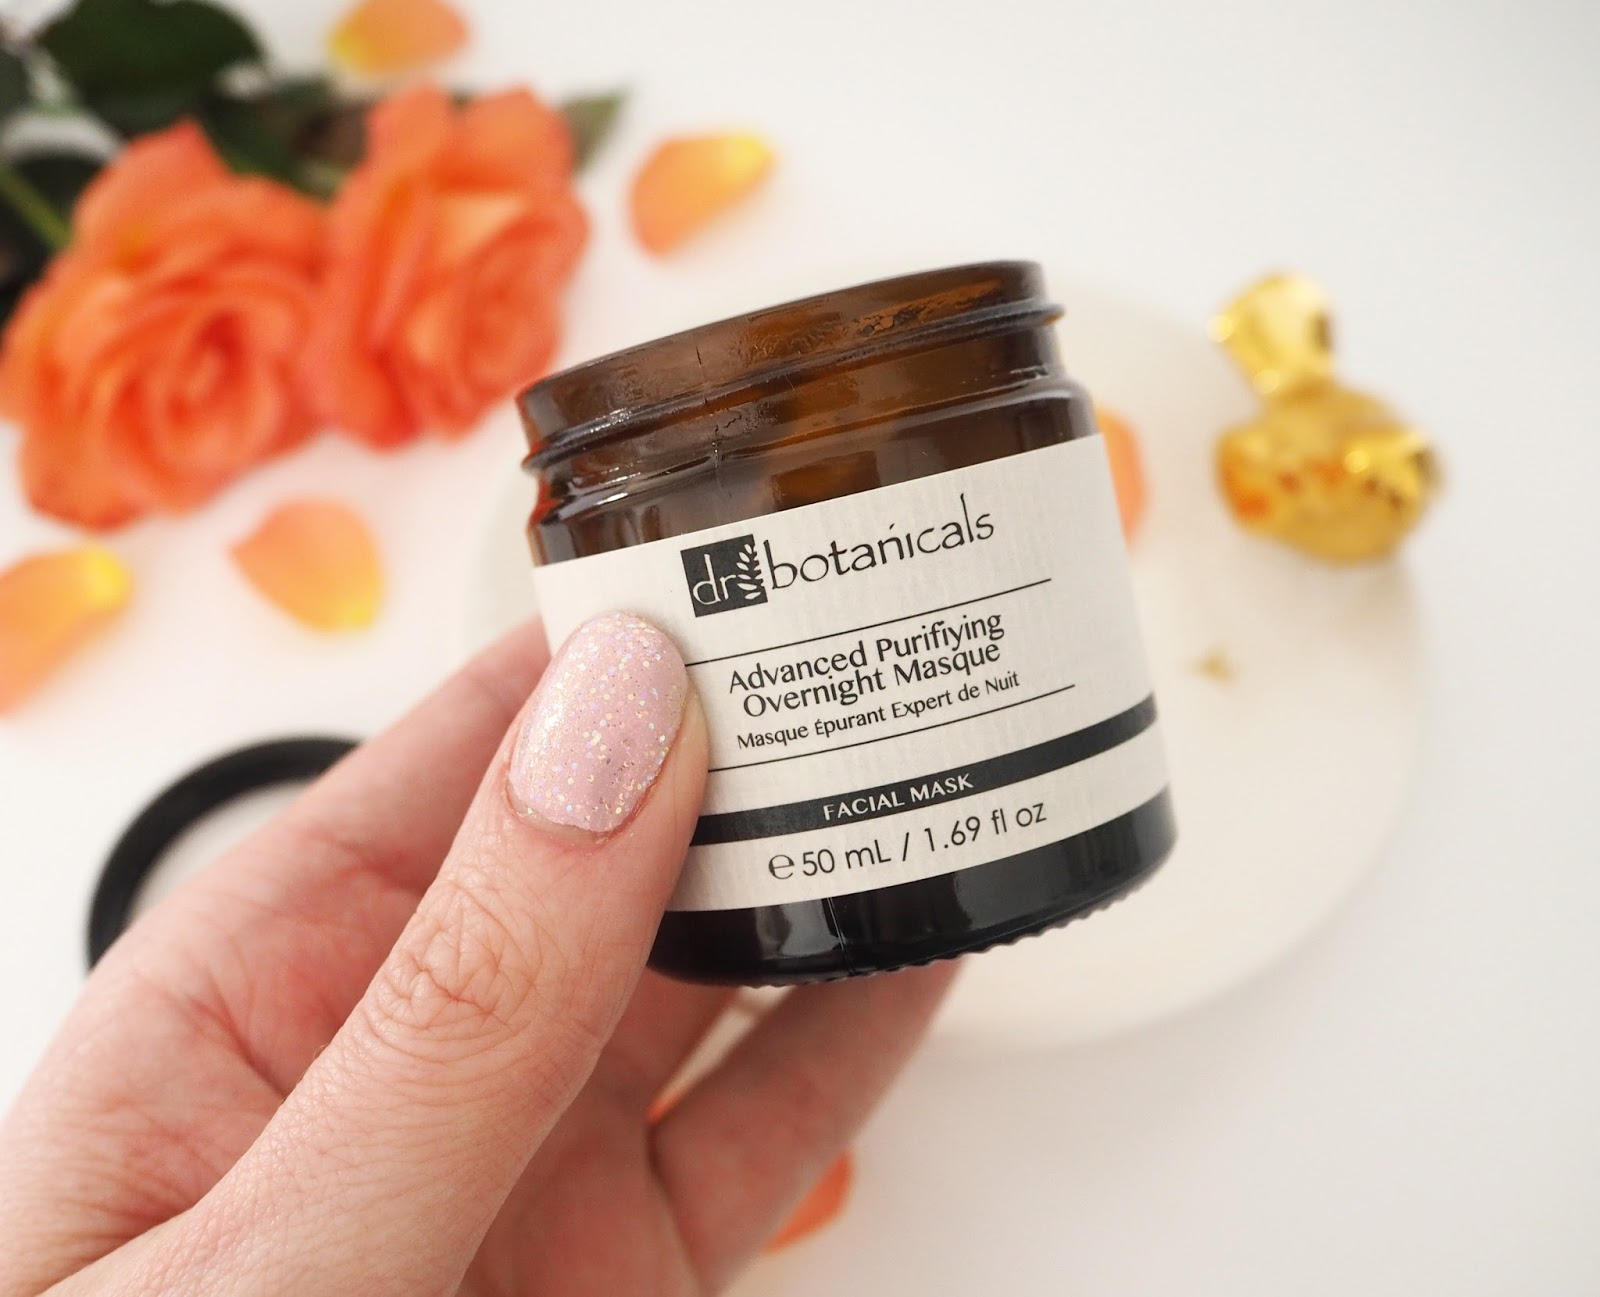 Dr Botanicals Advanced Purifying Overnight Masque, Katie Kirk Loves, Beauty Blogger, Dr Botanicals Skincare, UK Blogger, Skincare Review, Discount Code, National Bed Month, Beauty Sleep, Night Cream, Skincare Routine, Luxury Skincare Products